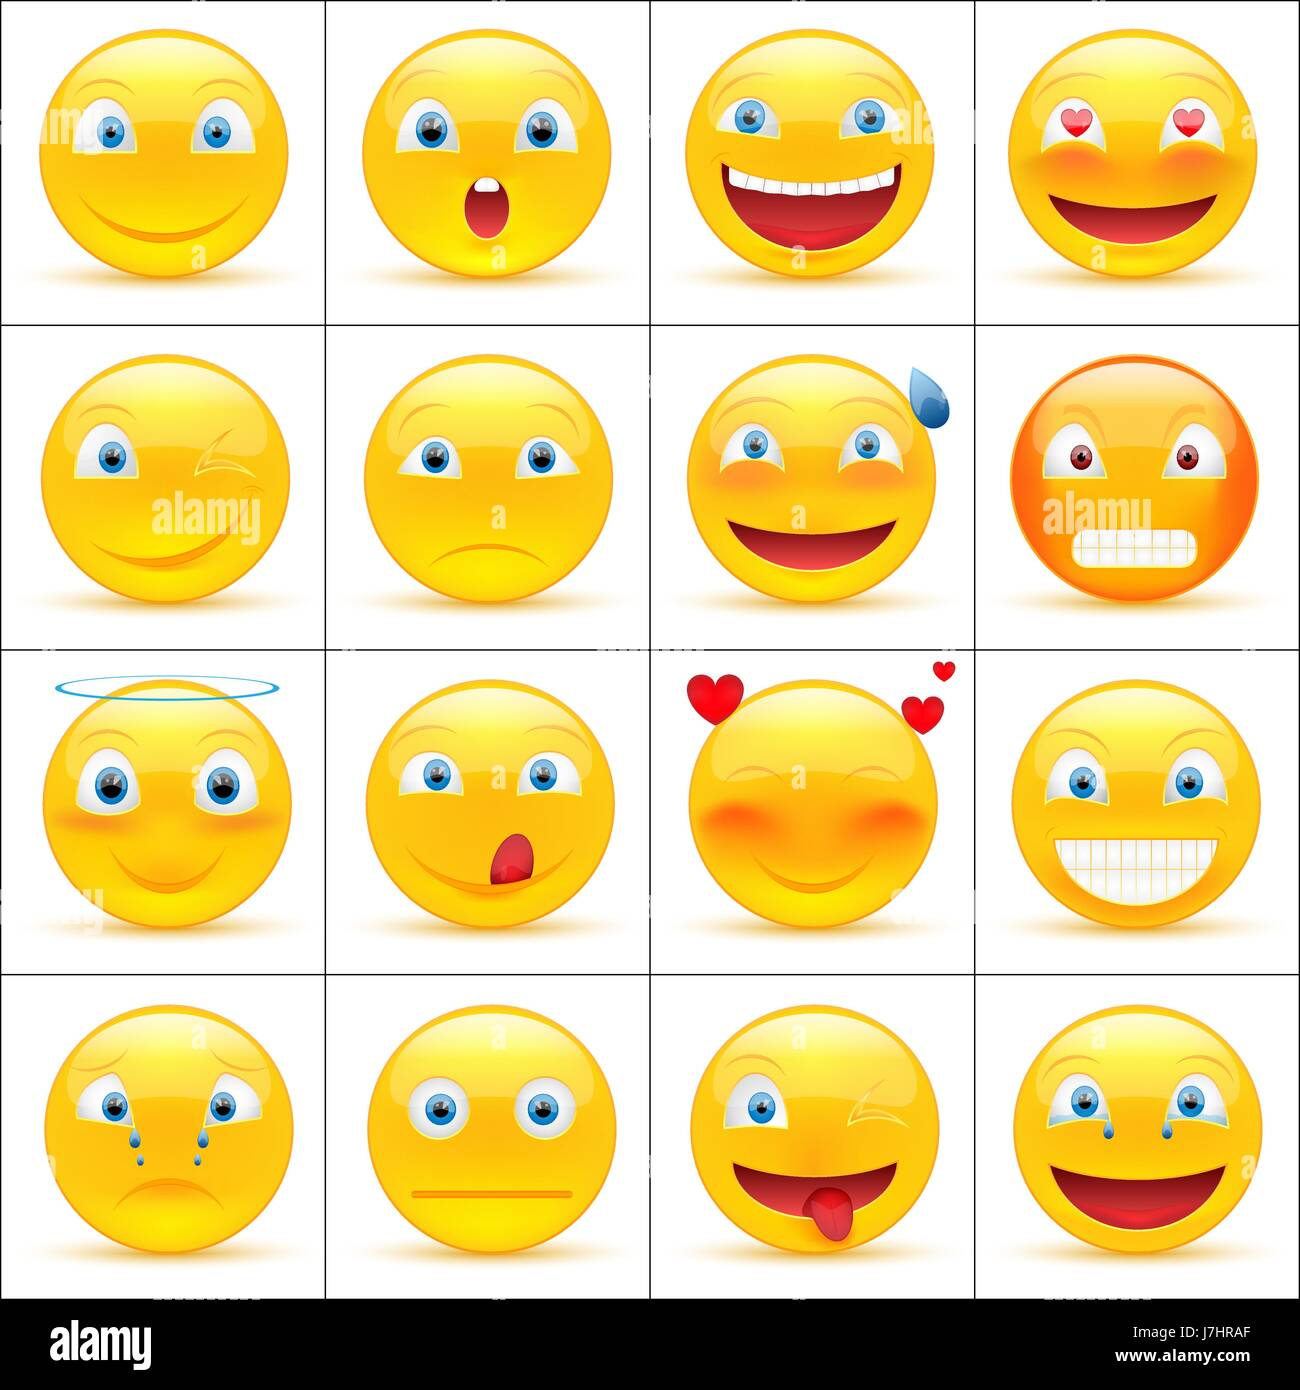 Set of emoticons smiley faces icons or yellow emoji with set of emoticons smiley faces icons or yellow emoji with different facial expressions in glossy 3d realistic isolated on white background buycottarizona Images